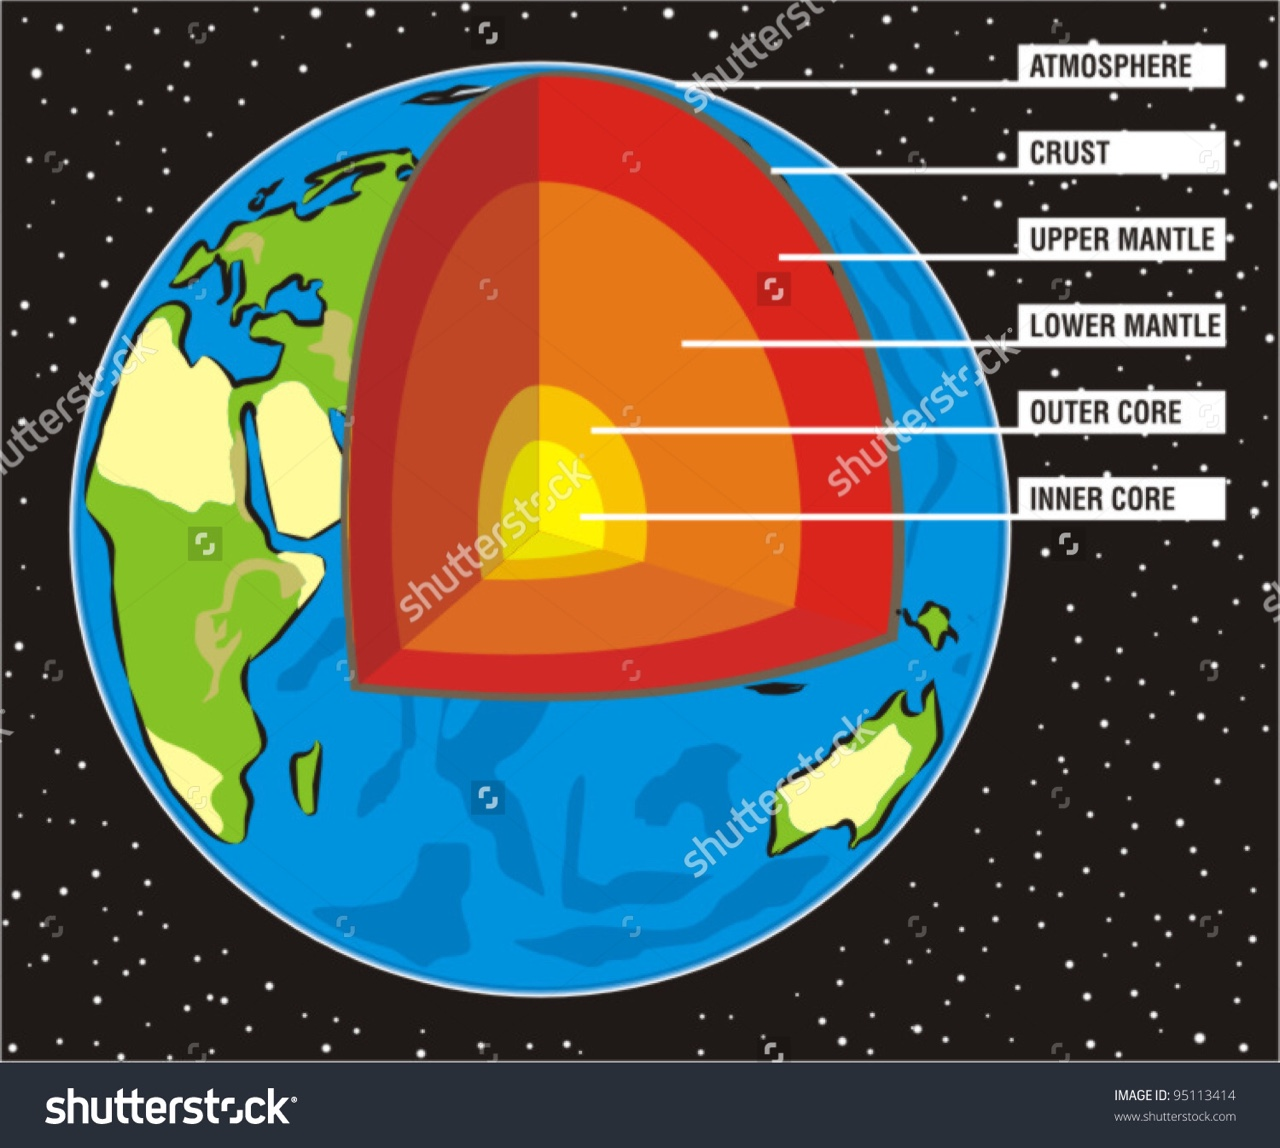 An Interactive Image The Earth Lithosphere Gallery For Inside Of Diagram Thinnest Layer Is Crust Second Outer Core Third Mantle Fourth Asthenosphere And Las One